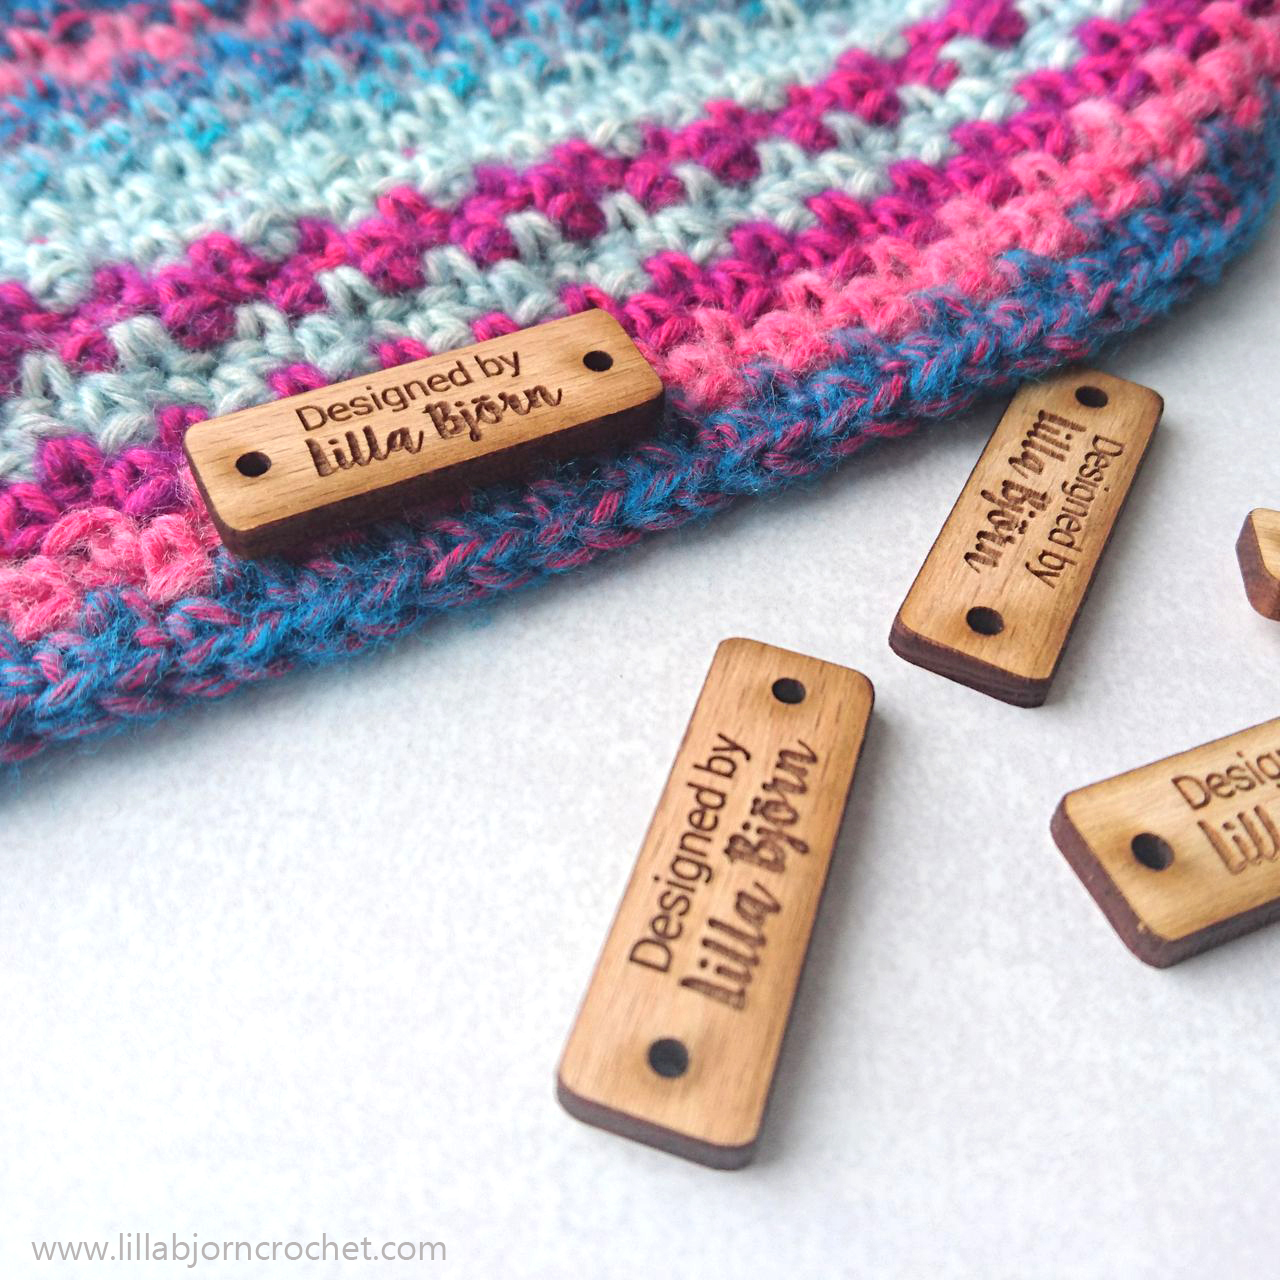 Wooden craft labels/tags - designed by Lilla Bjorn